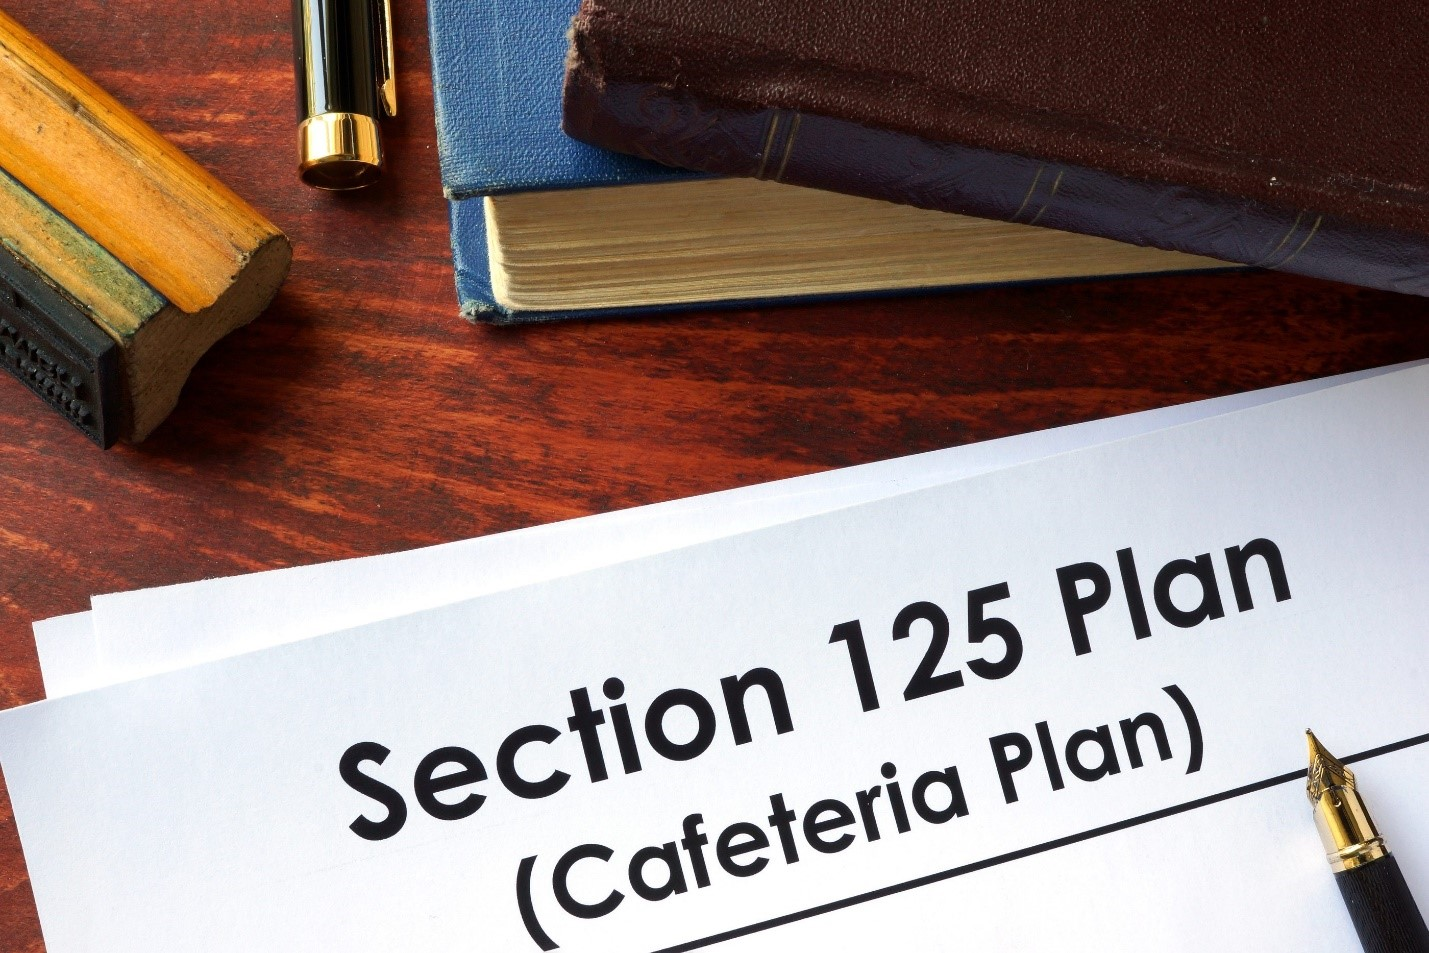 section-125-cafeteria-plan-2_1